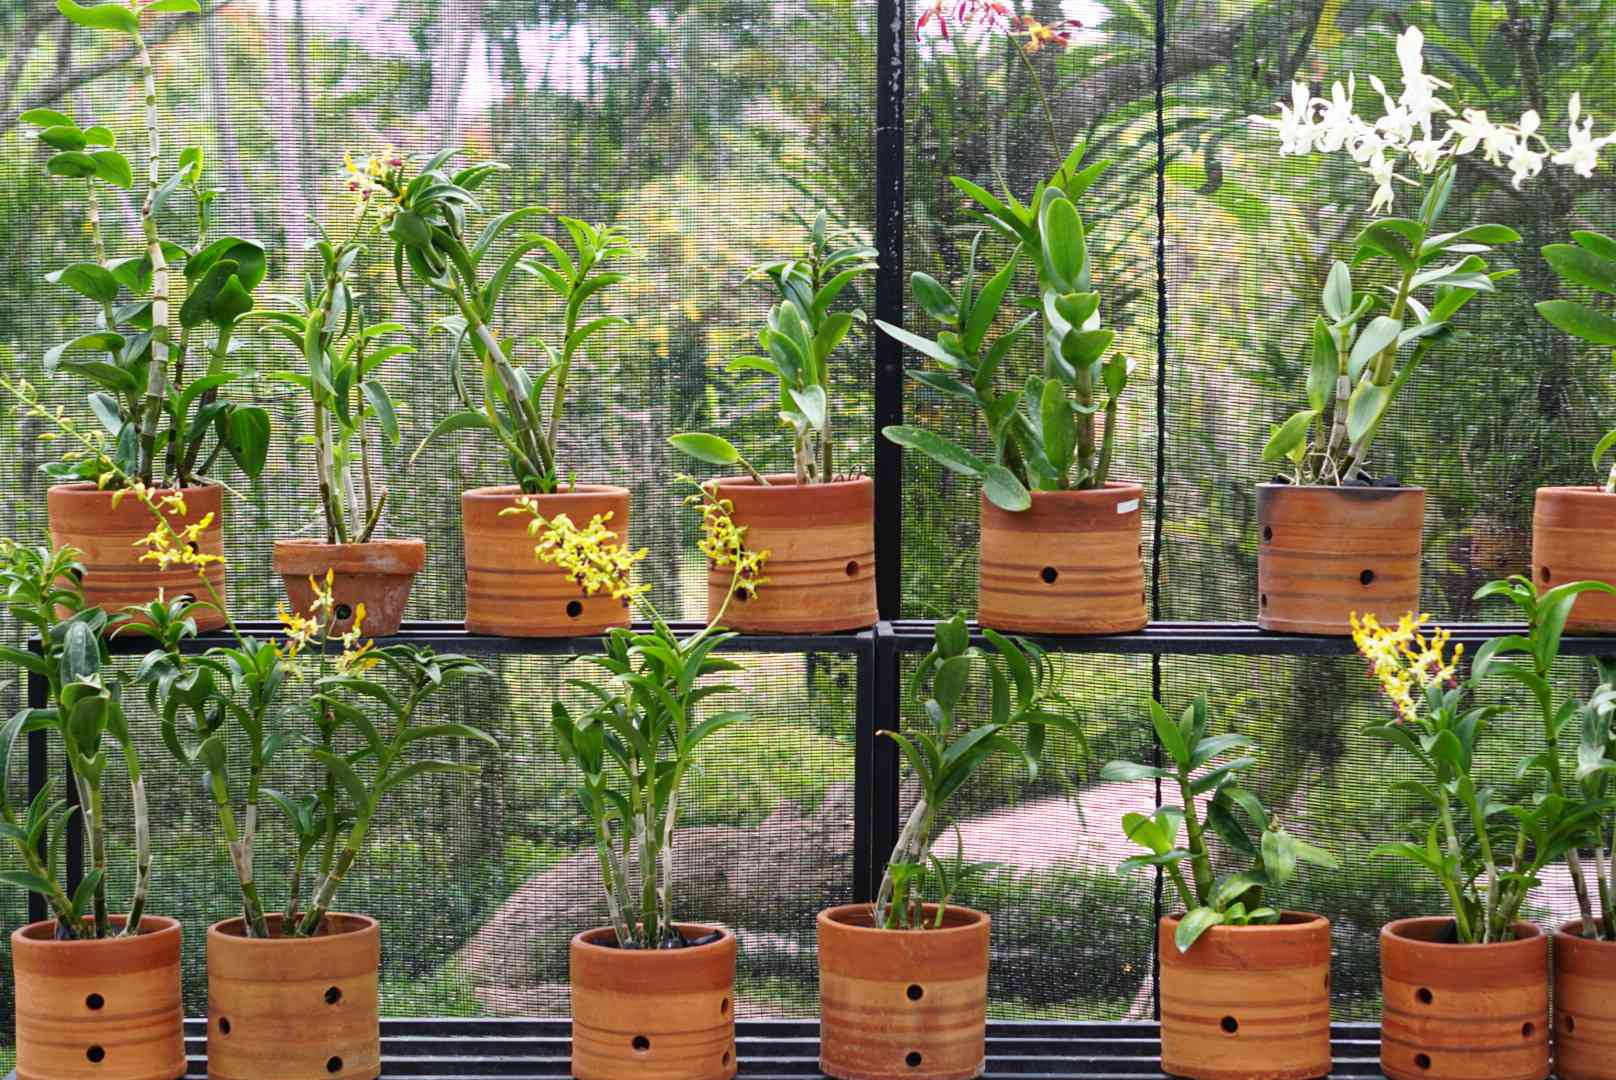 Orchids shelved outside in terracotta pots